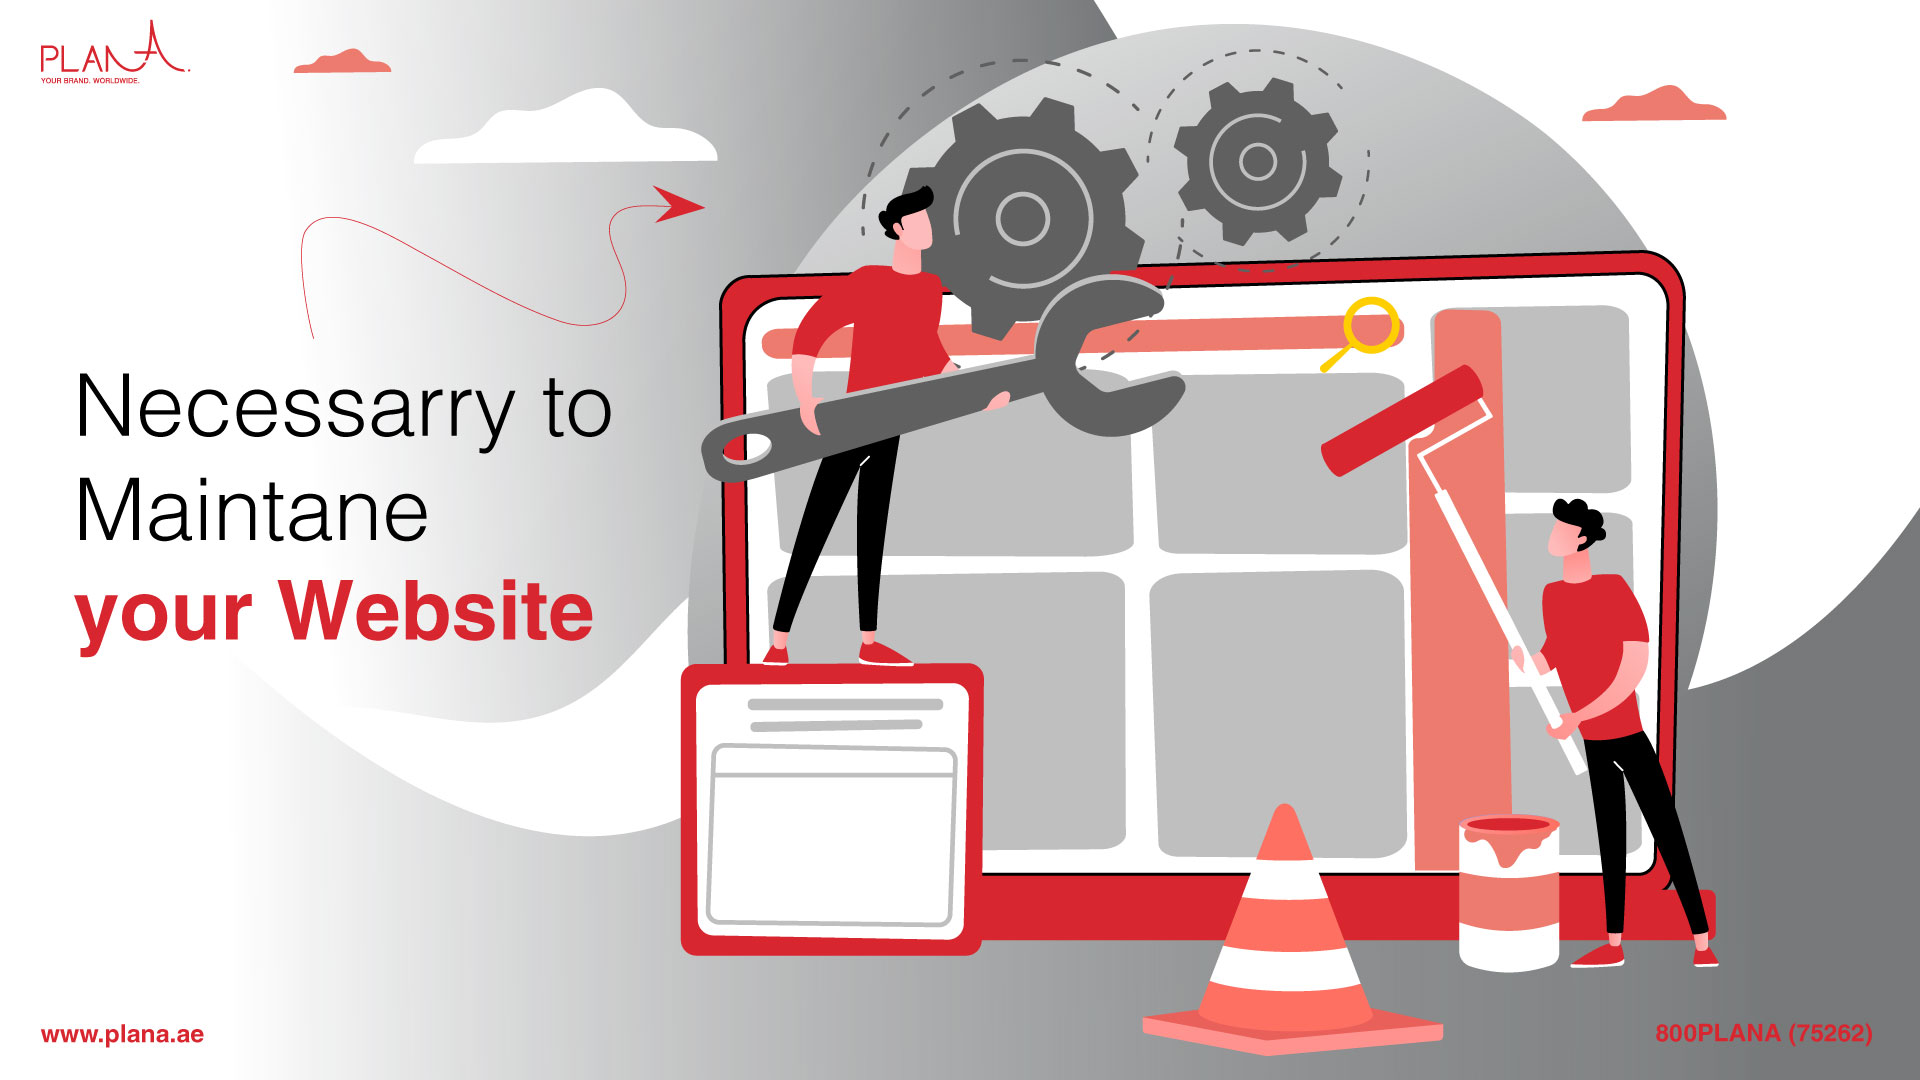 Why it is Necessarry to Maintane Your Website?